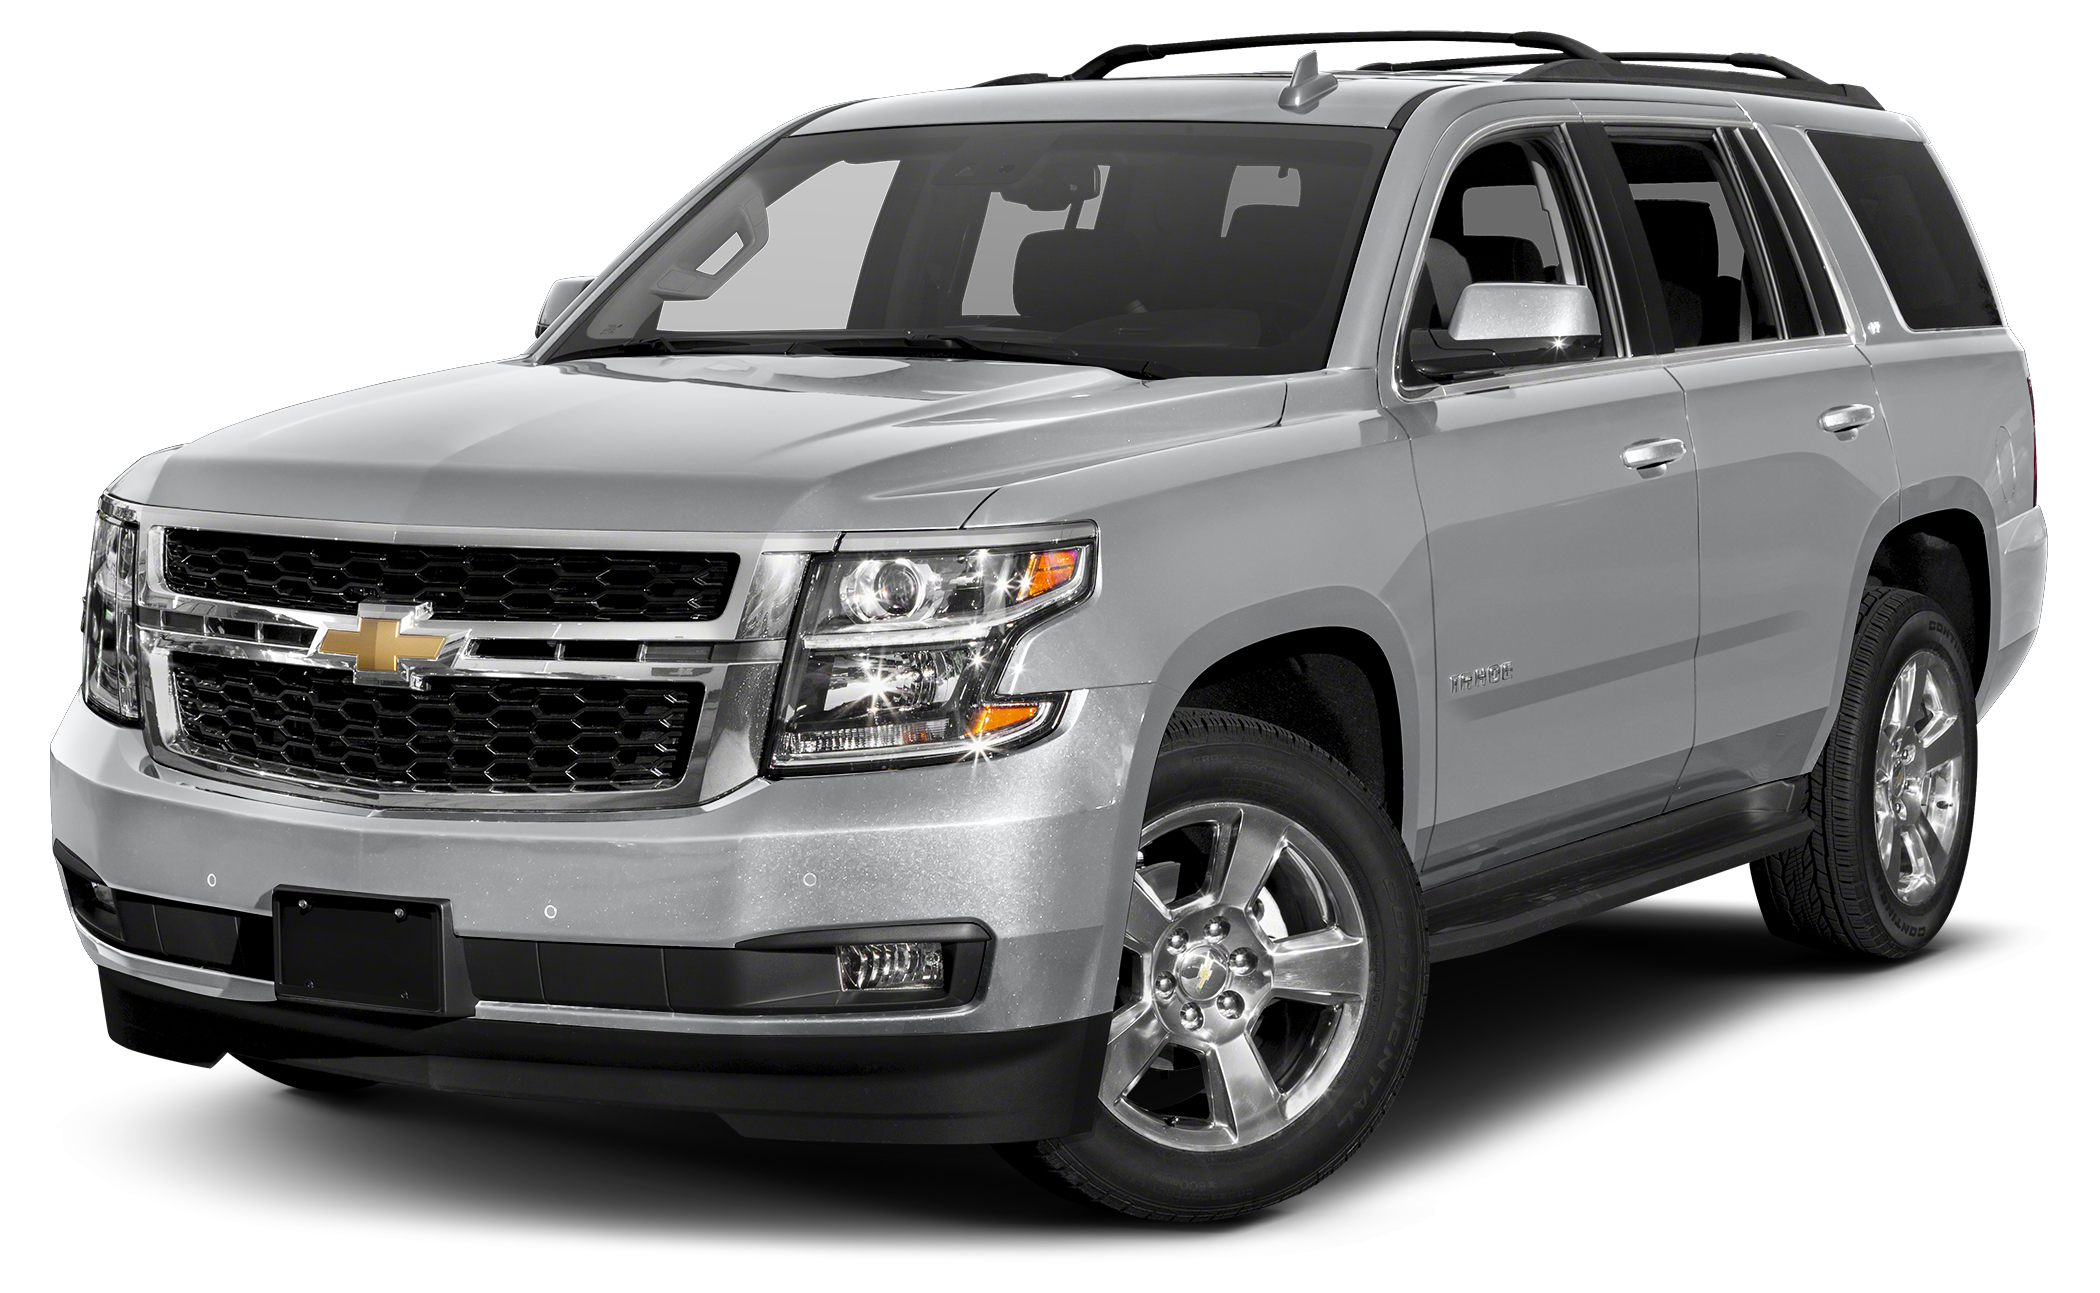 2016 Chevrolet Tahoe LS Silver Ice Metallic exterior and Jet Black interior LS trim Running Boar